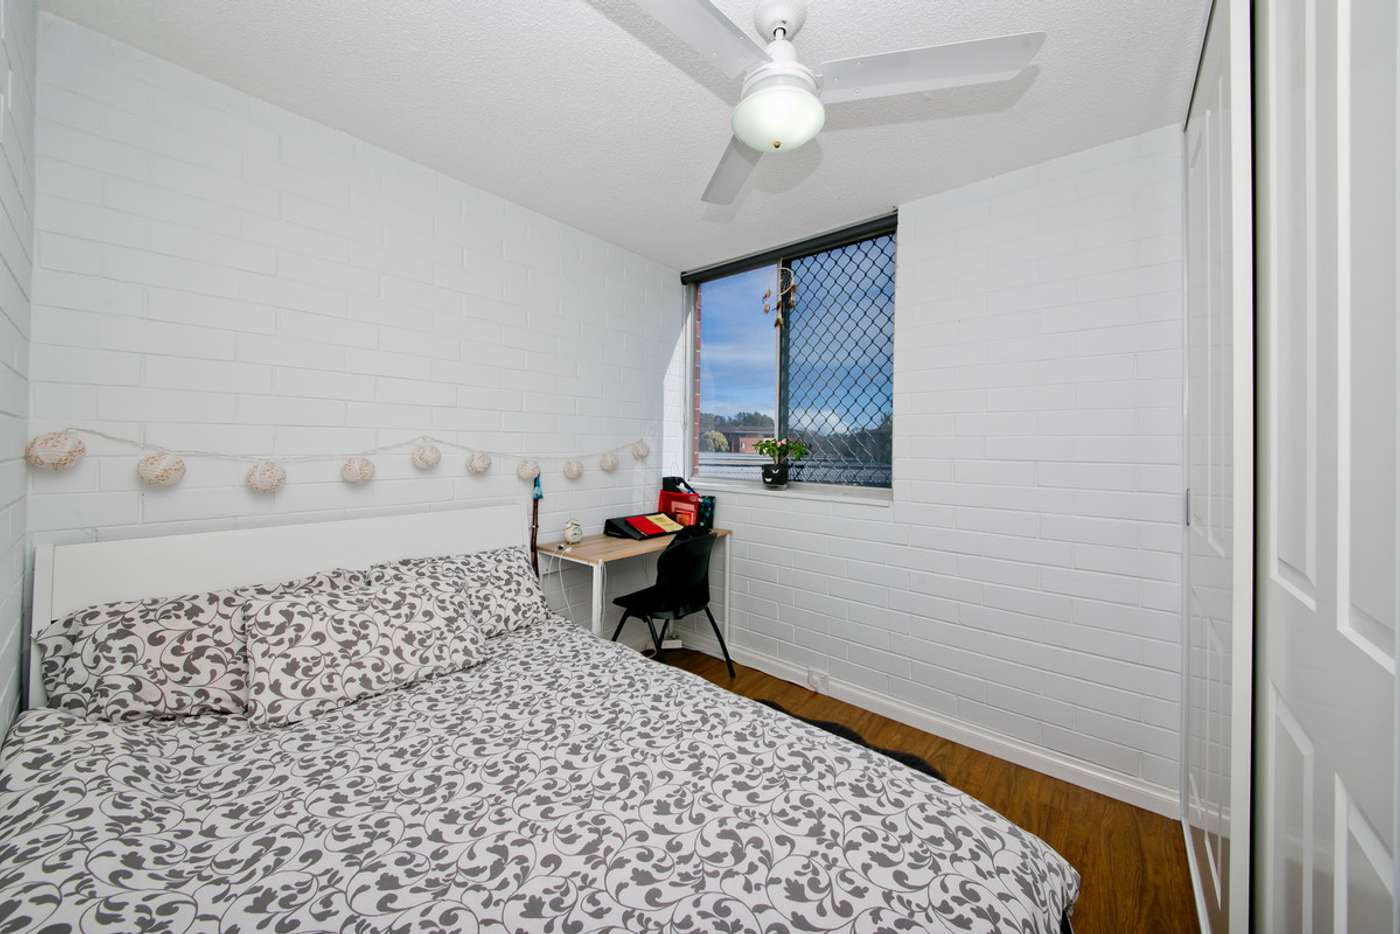 Seventh view of Homely apartment listing, 21A/49 Herdsman Parade, Wembley WA 6014